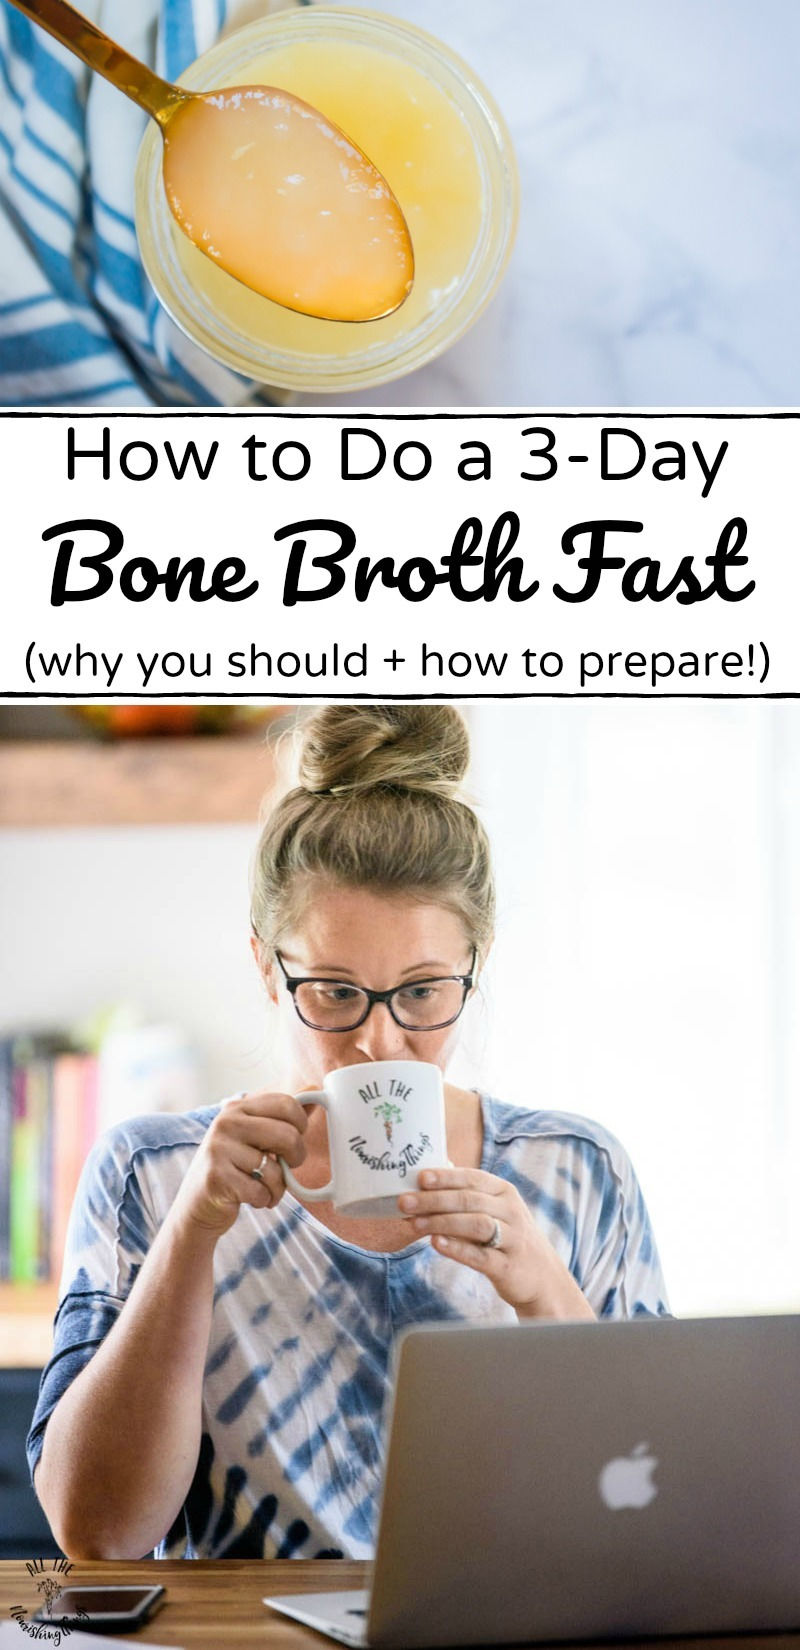 spoon of bone broth over an image of a woman doing a 3-day bone broth fast with text overlay